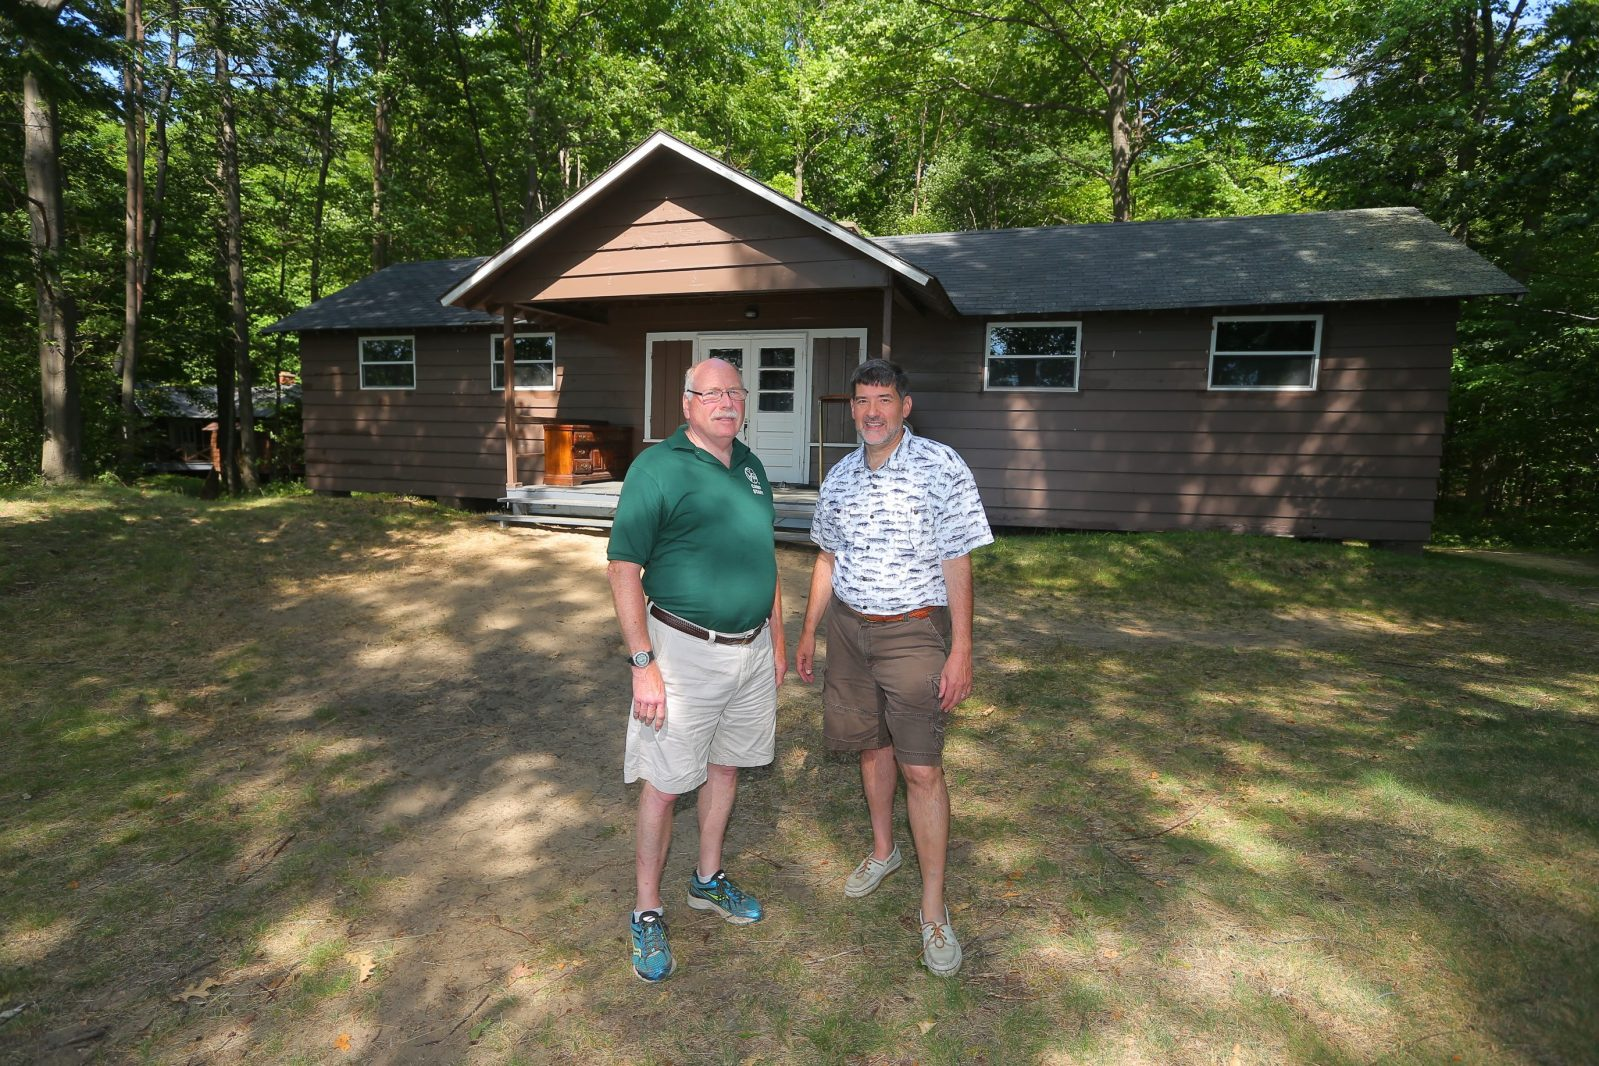 Ray Wassinger, camp director, left, and Mark Zirnheld, CEO St Vincent de Paul at the St. Vincent de Paul summer camp, in Angola, N.Y.,on Sunday July 10, 2016, this the last season for the camp, which began nearly 90 years ago but is ending because of declining enrollment and finances. (John Hickey/Buffalo News)